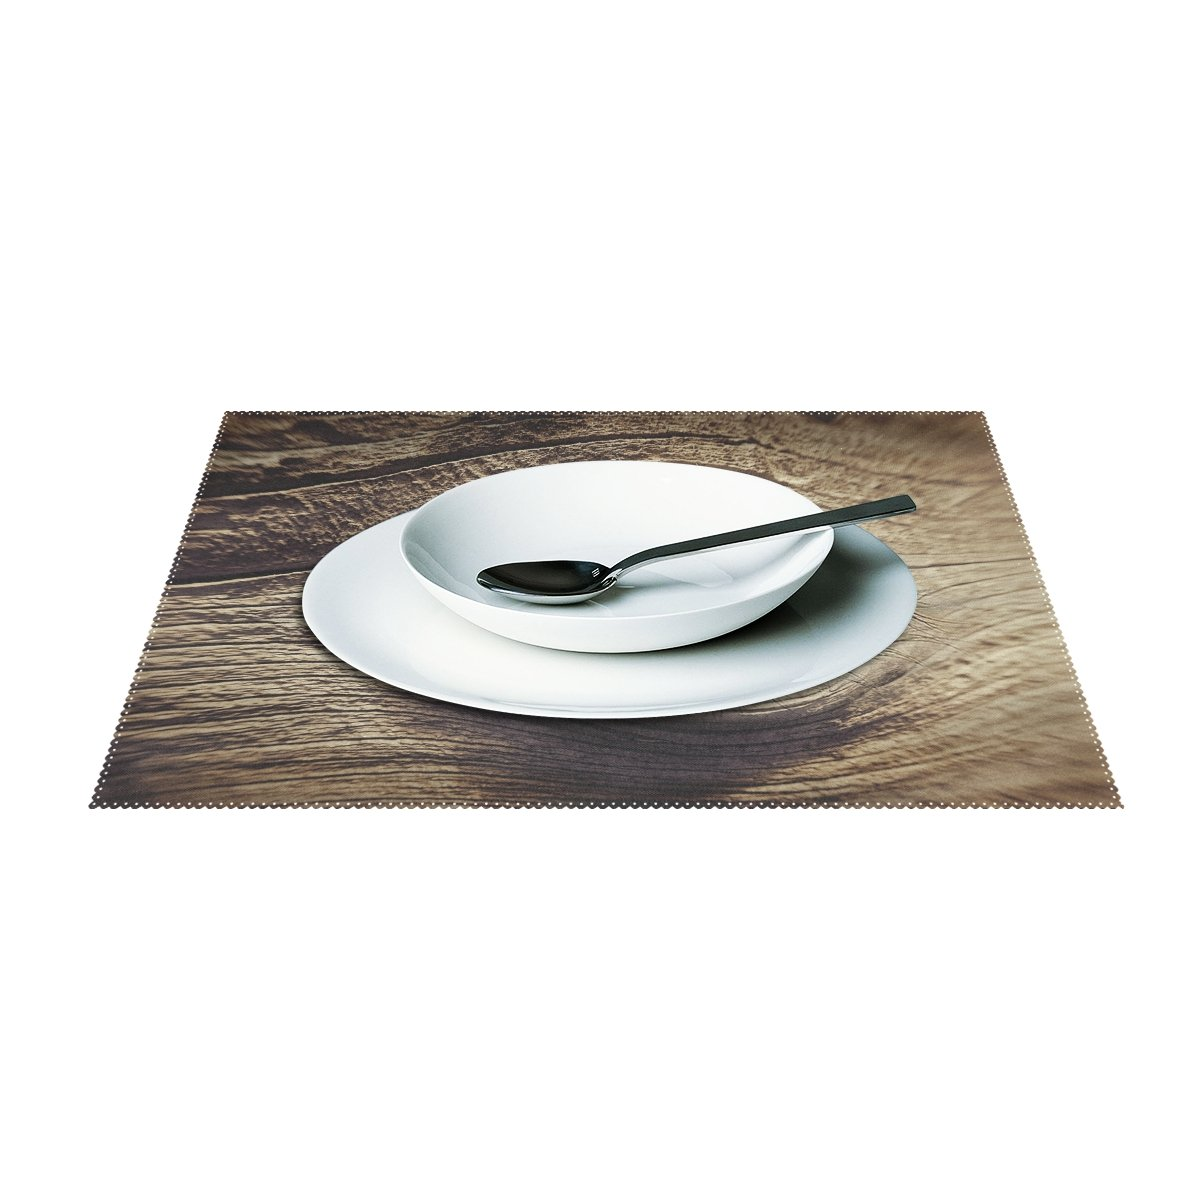 WIEDLKL Eye Wood Knothole Wood Eye Brown Wooden Structure Placemats Set Of 4 Heat Insulation Stain Resistant For Dining Table Durable Non-slip Kitchen Table Place Mats by WIEDLKL (Image #3)